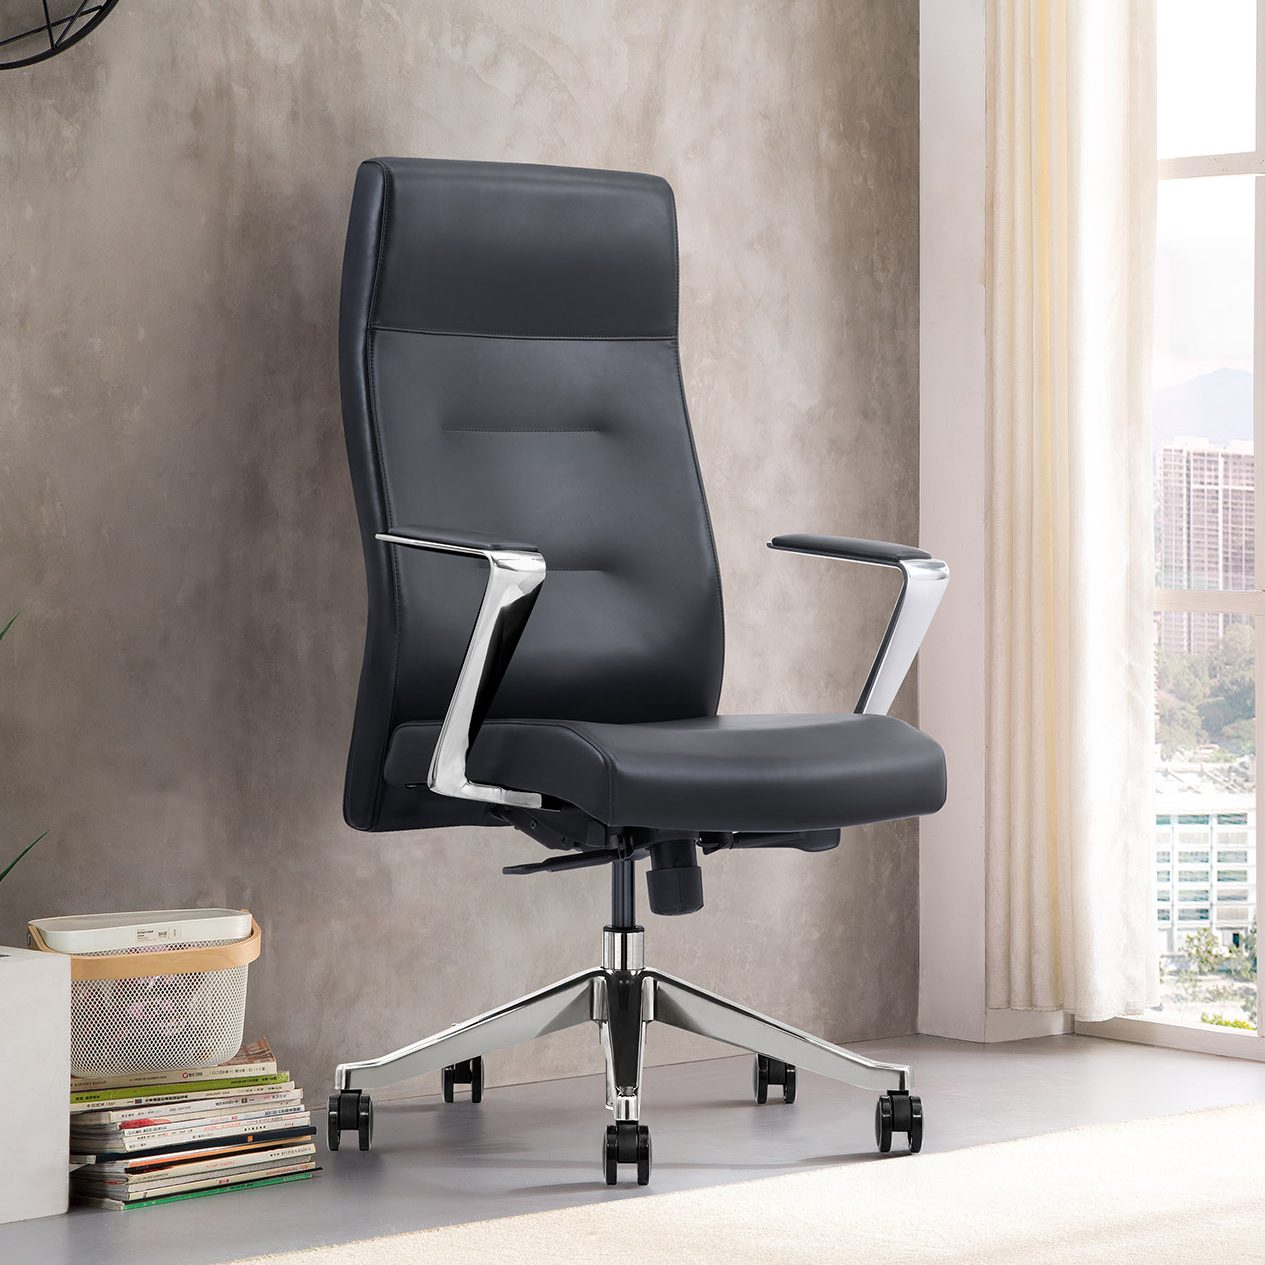 Black Leather High-Back Home Office Chair